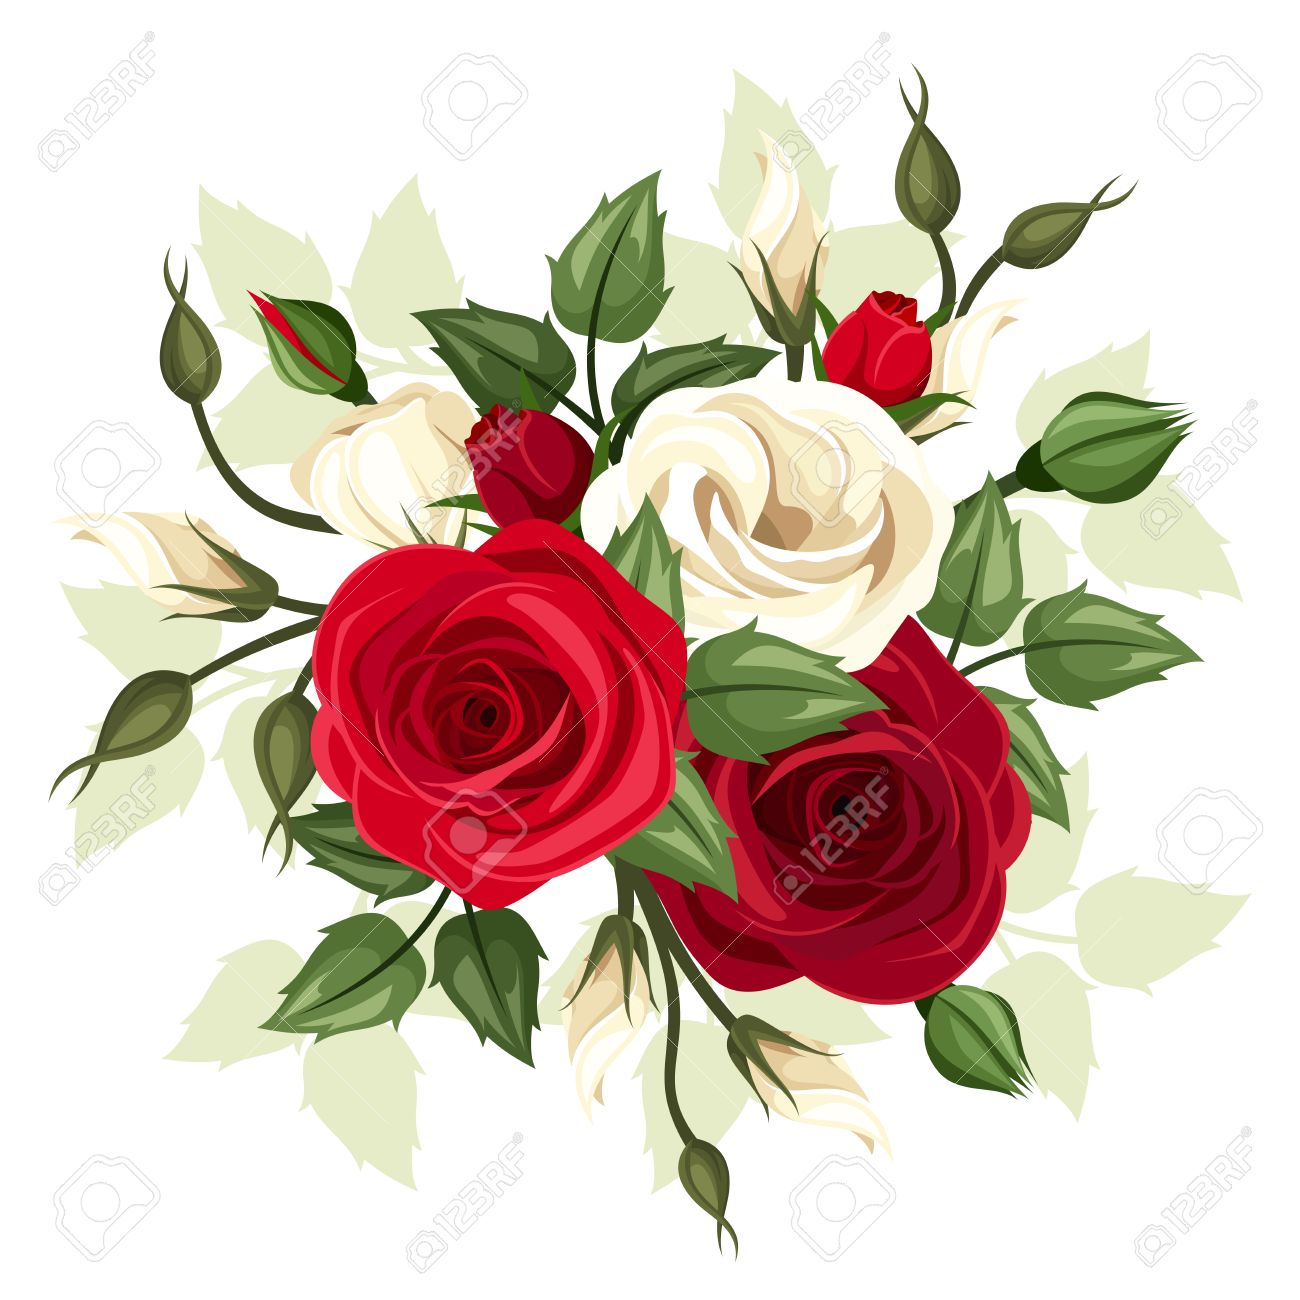 Red And White Roses And Lisianthus Flowers Vector Illustration